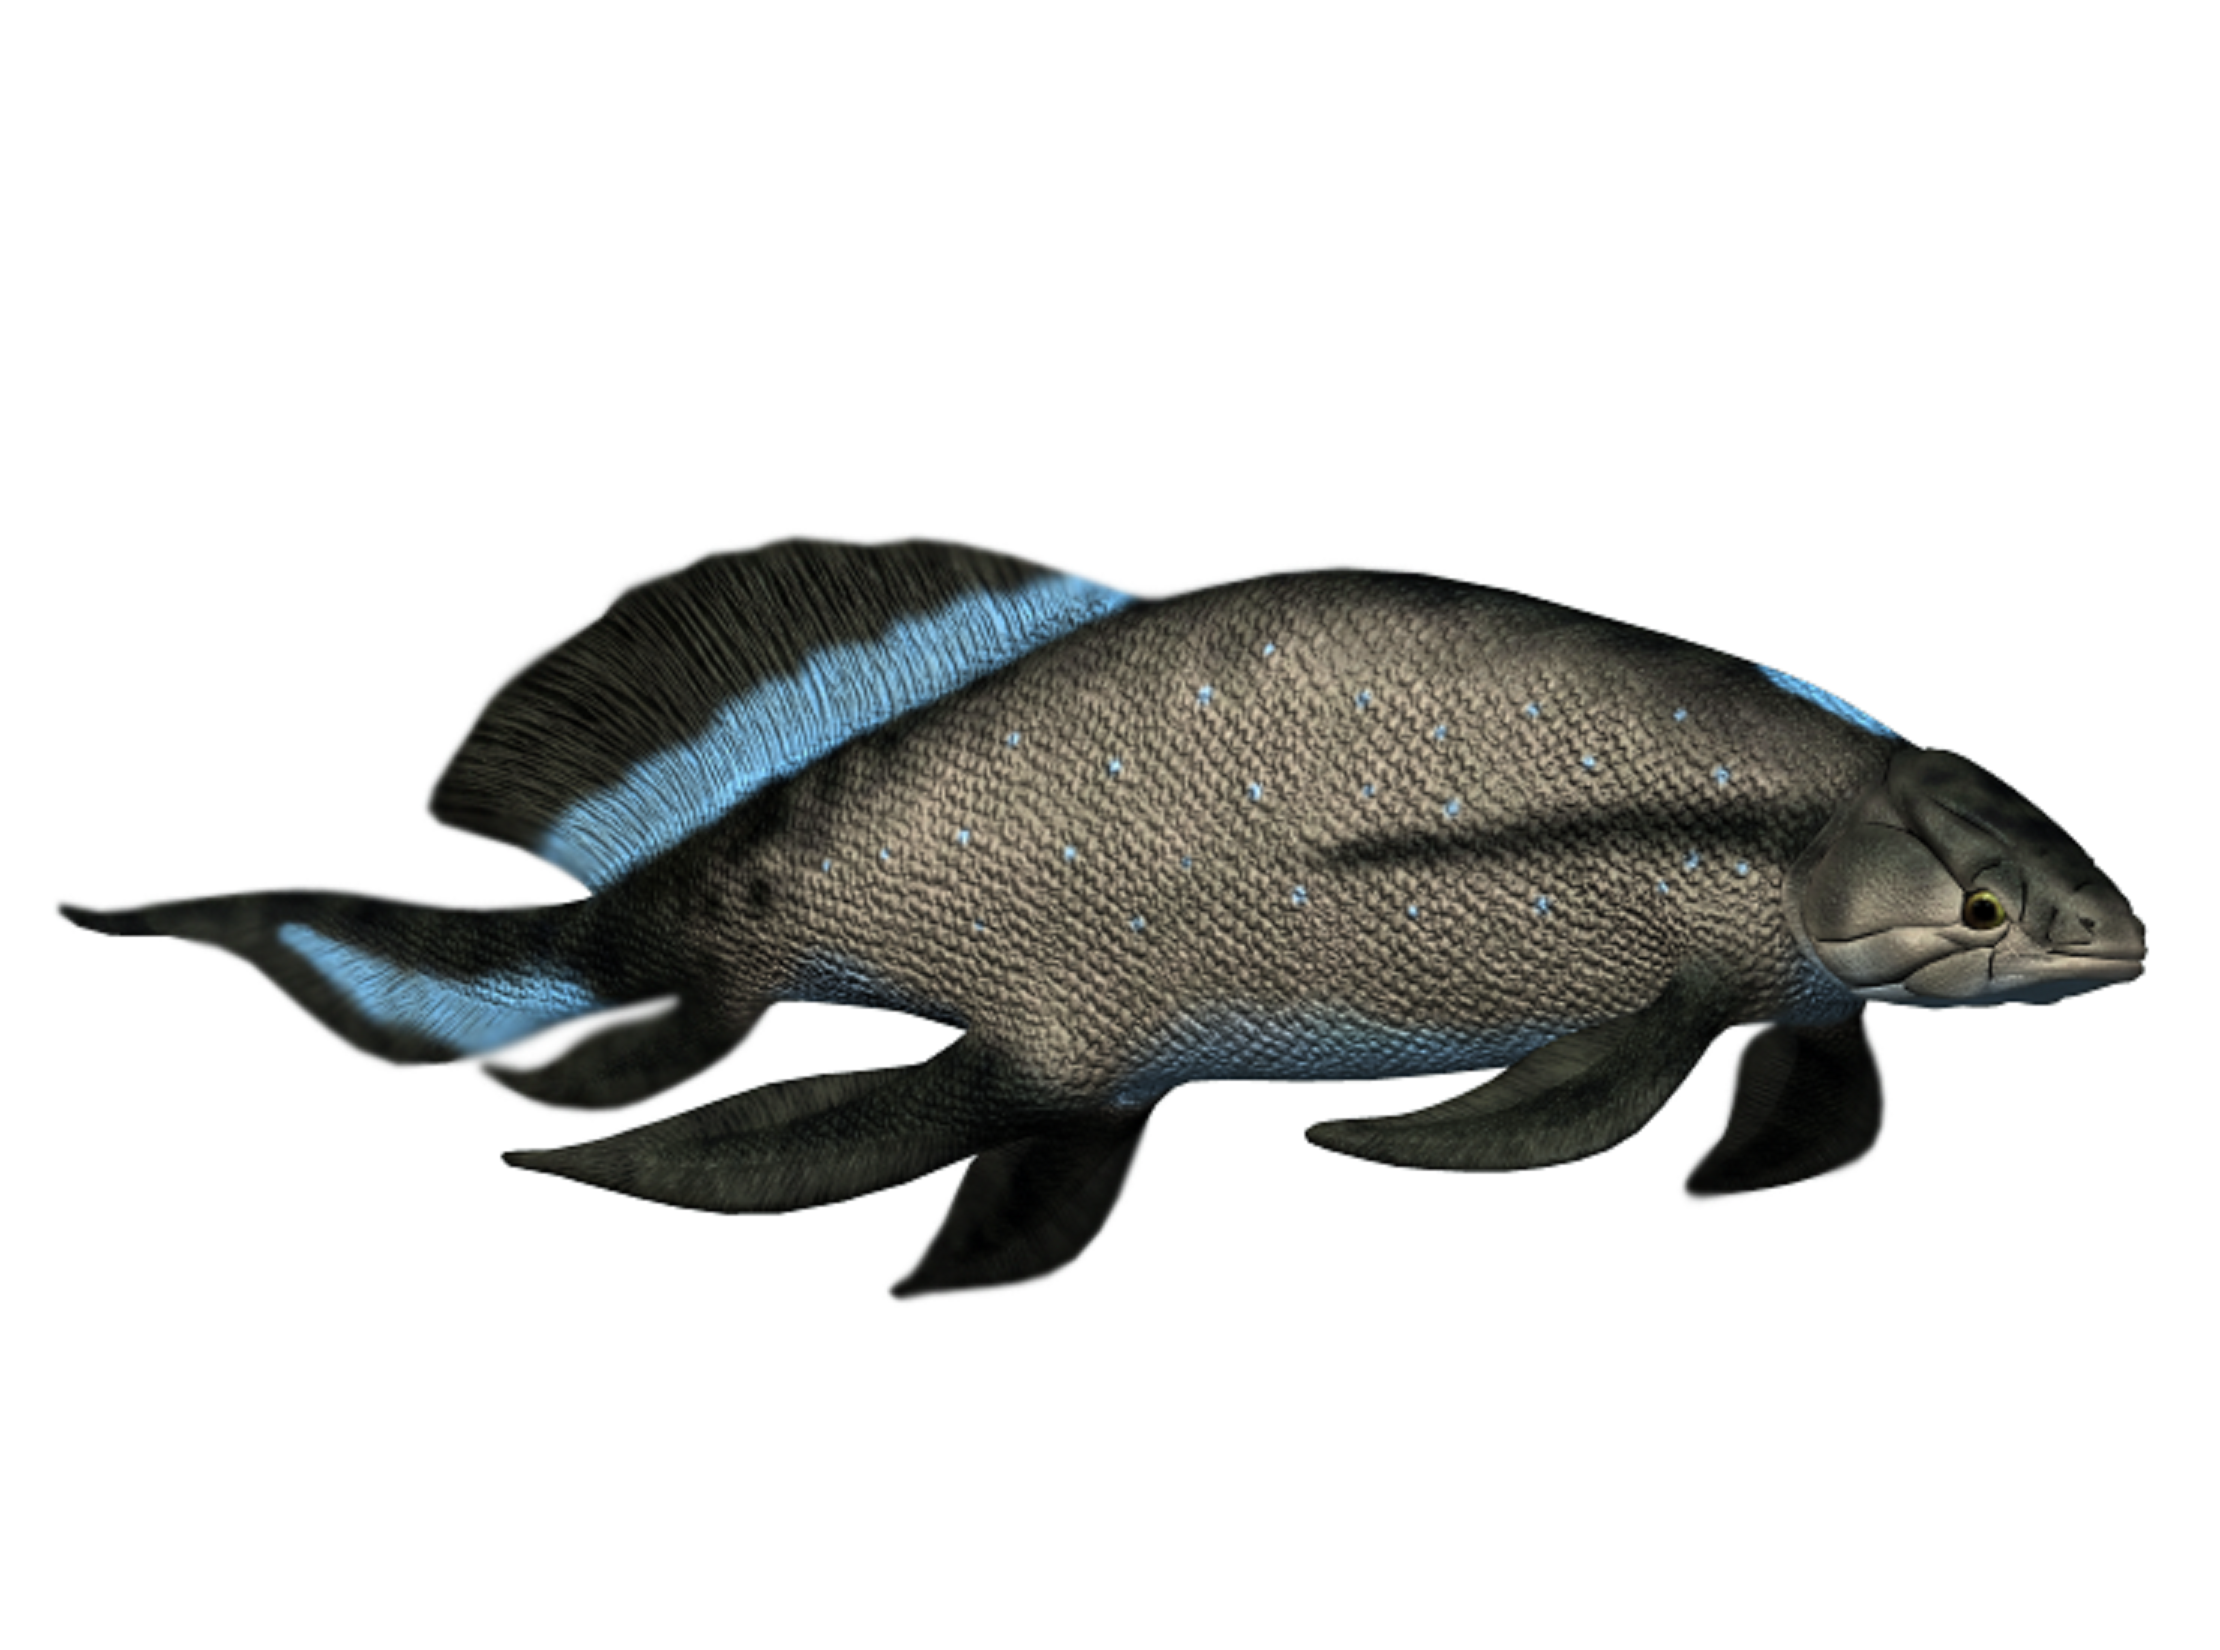 Art illustration - Aquatic animals - Scaumenacia curtia: is an extinct genus of prehistoric sarcopterygian, was a fish that lived during the Devonian period, approximately 400 million years ago.  this fish also had lungs to breathe, so it probably had to come to the surface often, to gulp air. The shape of the body of this fish means that it was probably a fast swimming hunter. The specimen was found in Canada. It is from the Devonian period (418 - 362 million years ago).